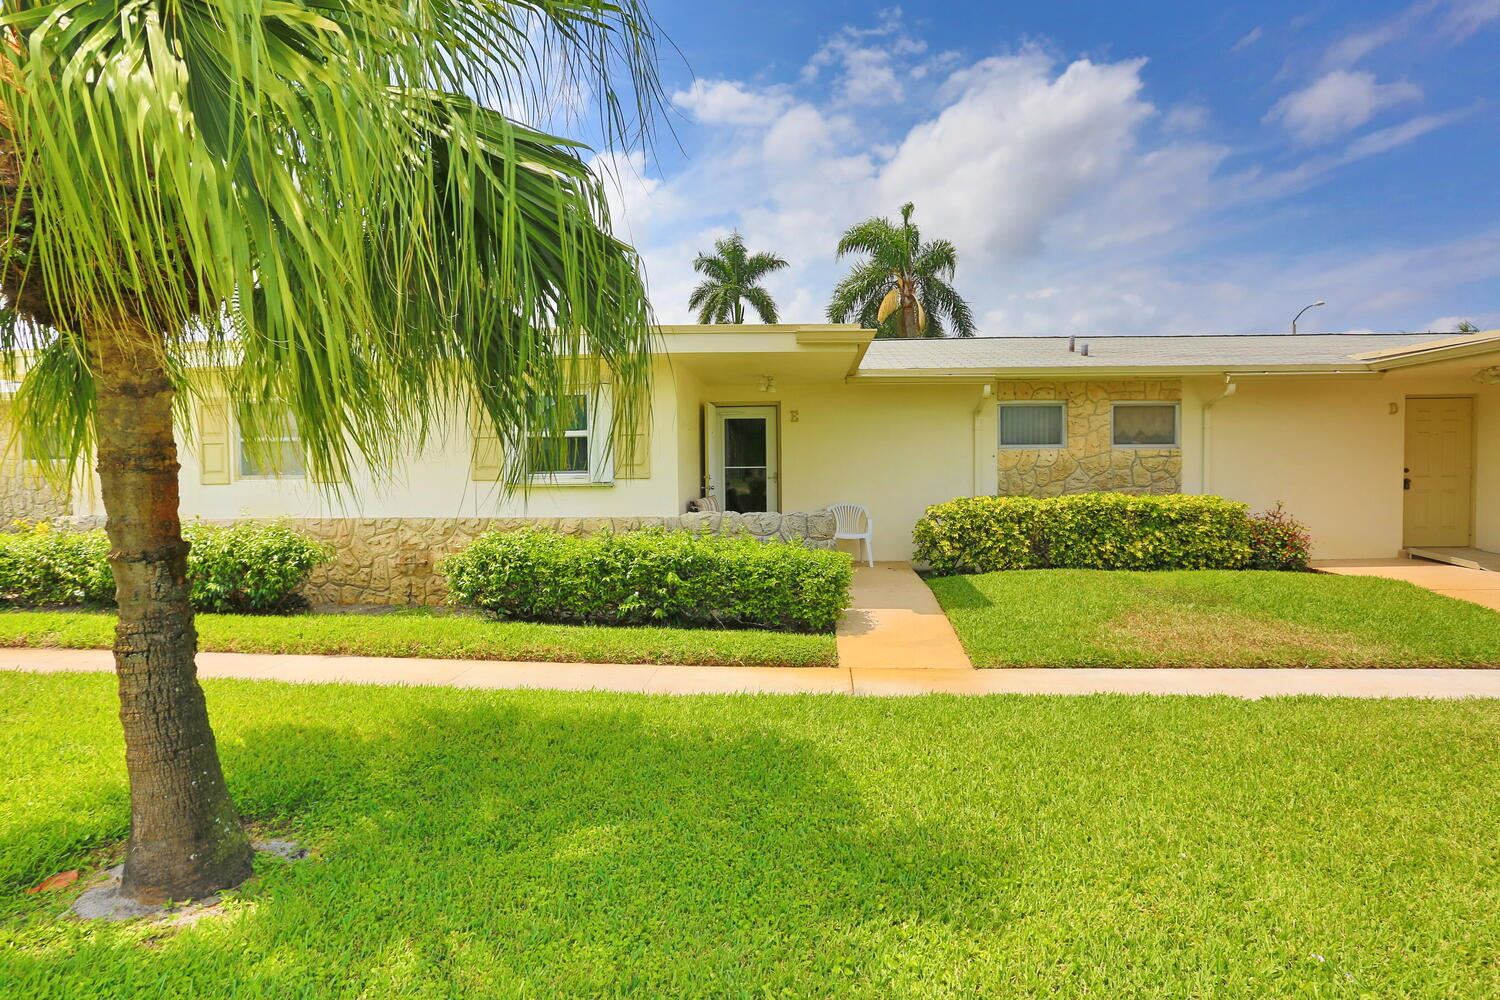 2844 E Crosley Drive #E, West Palm Beach, FL 33415 - MLS#: RX-10704301